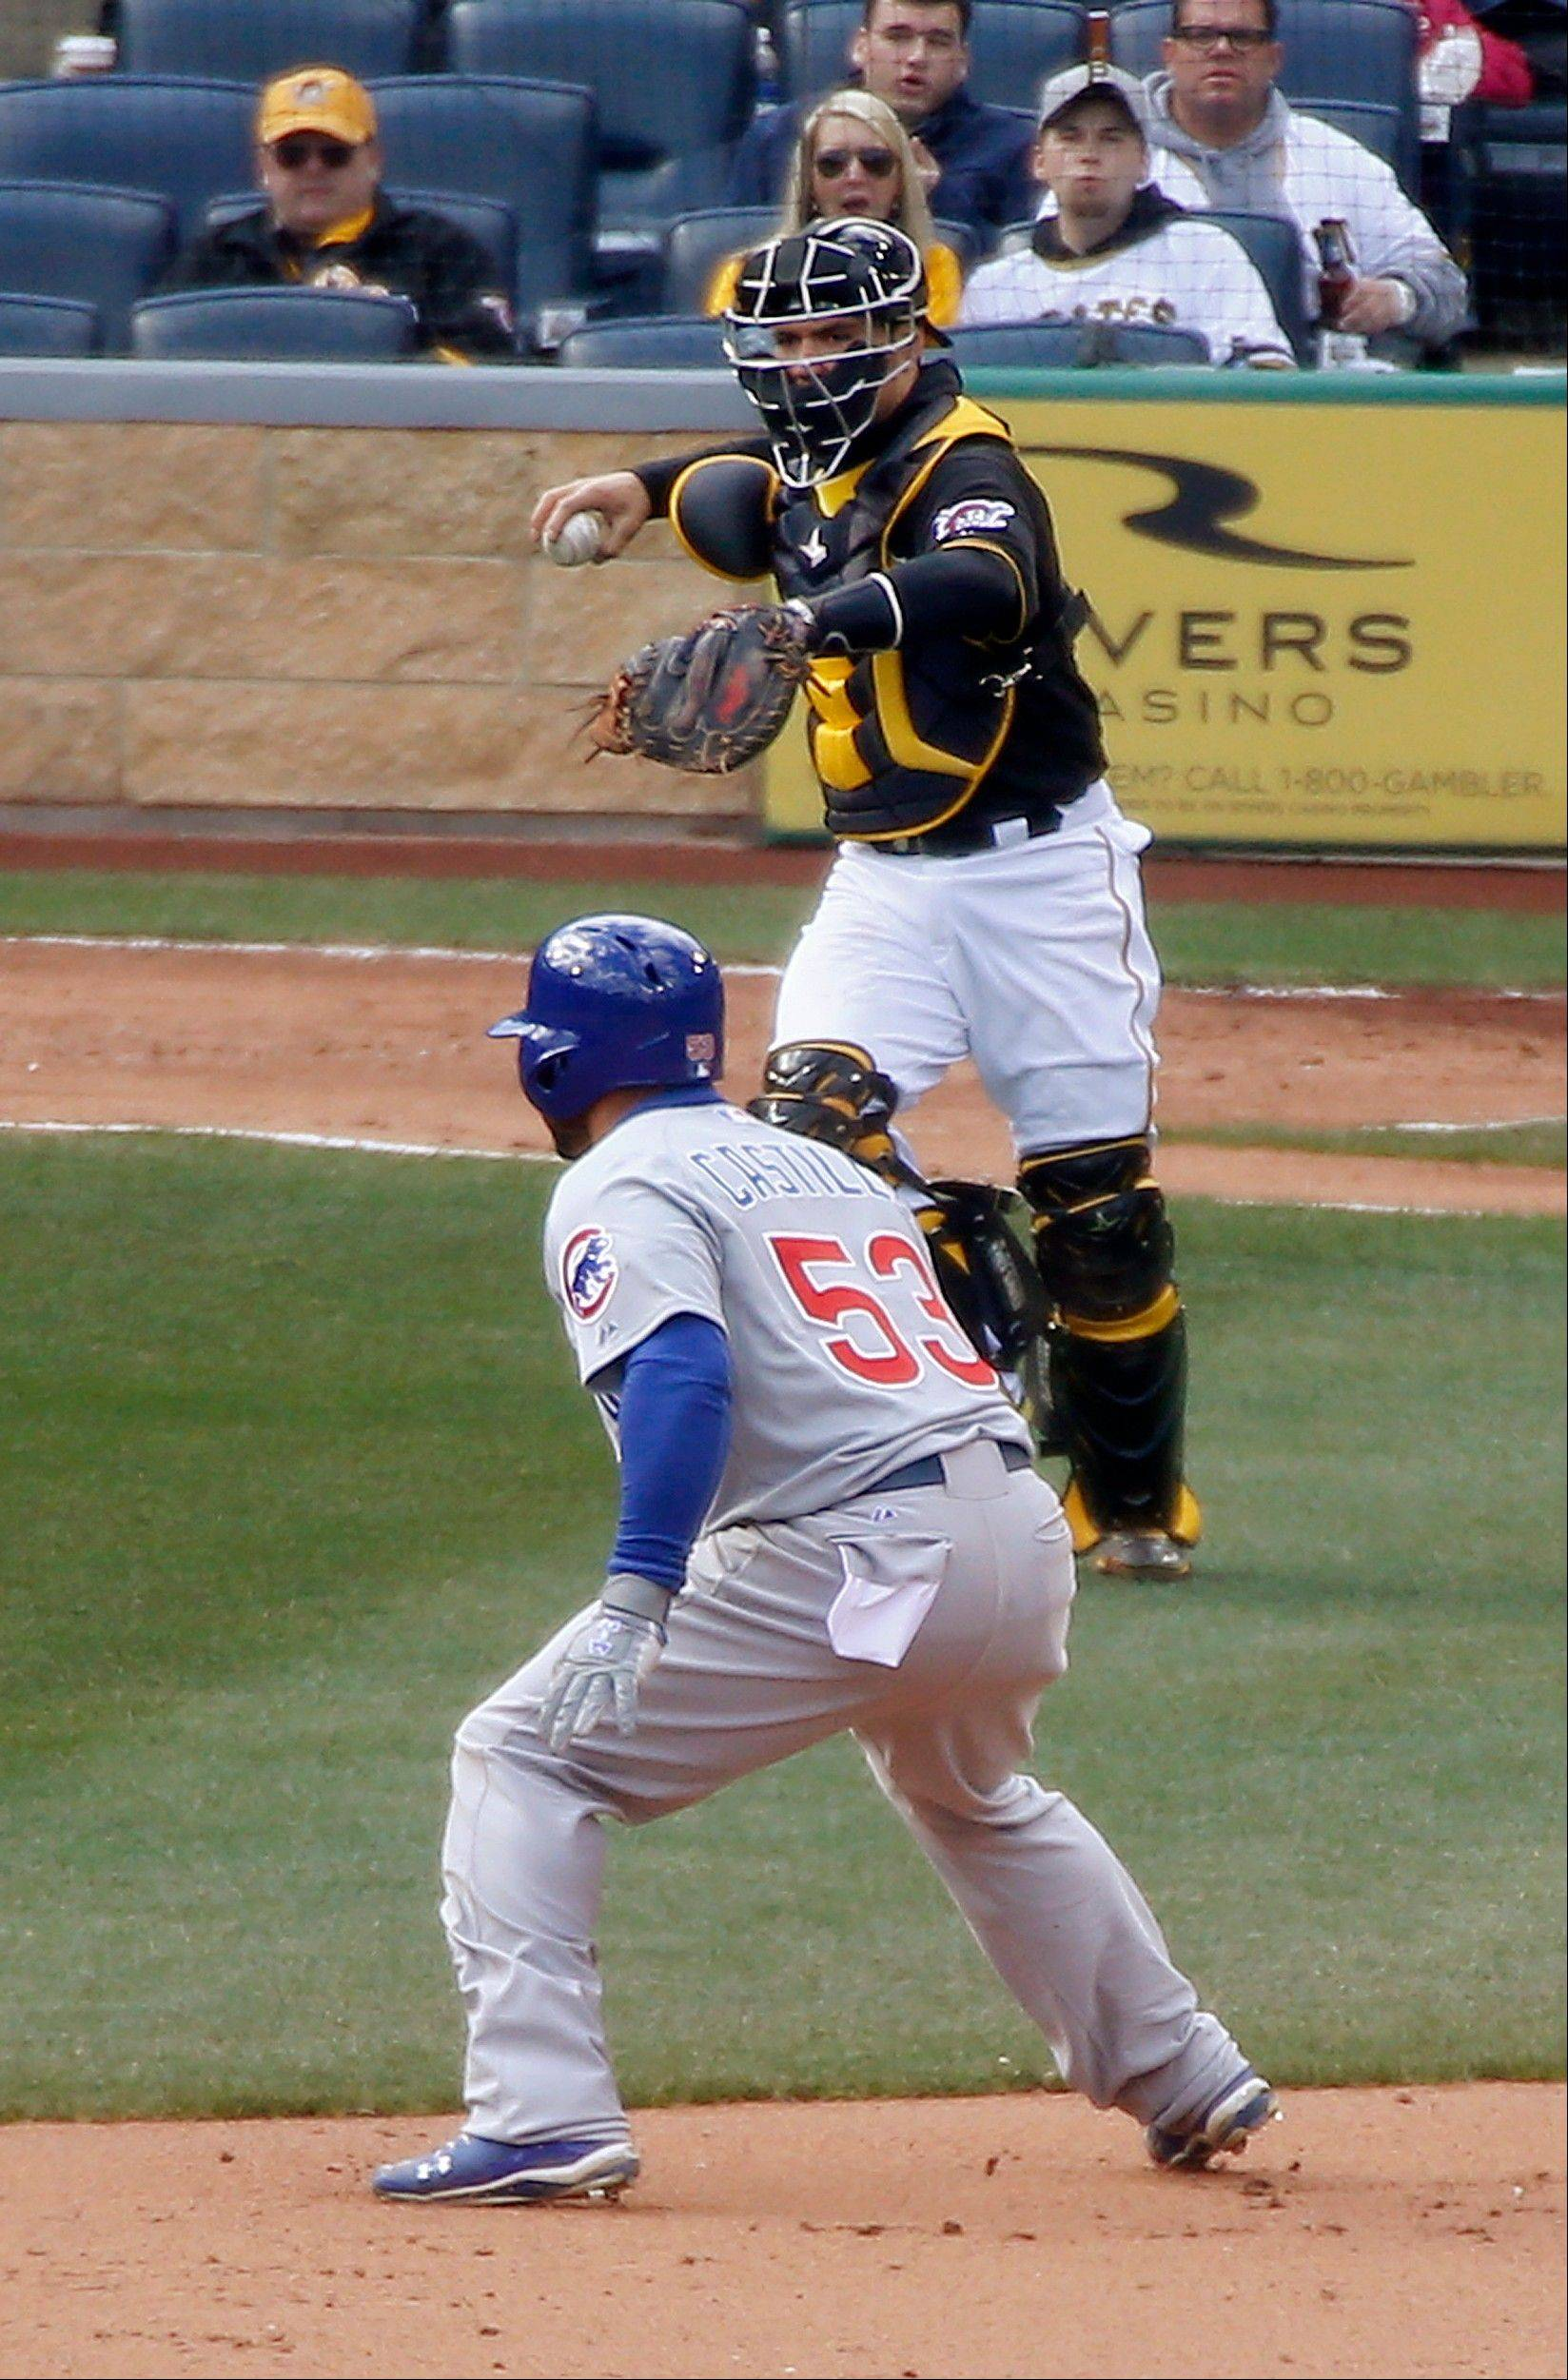 Pittsburgh Pirates catcher Russell Martin, top, looks to throw as Chicago Cubs' Welington Castillo is caught in a rundown after driving in teammate Nate Schierholtz in the sixth inning.